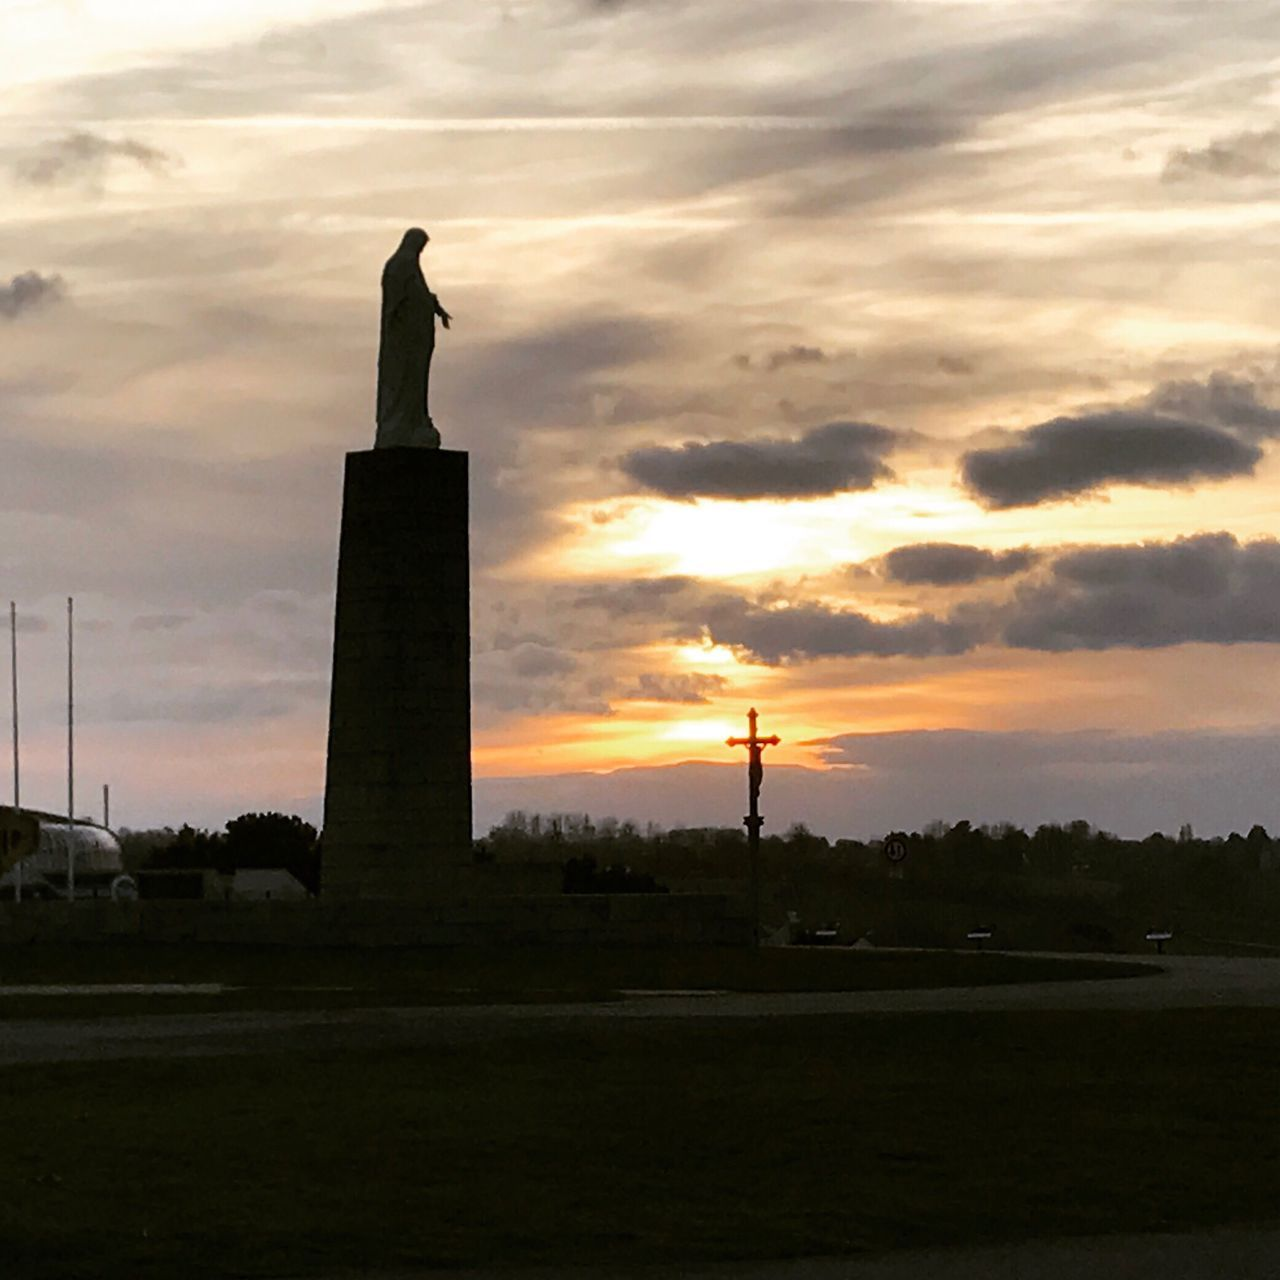 statue, sunset, human representation, sculpture, cloud - sky, sky, monument, male likeness, travel destinations, silhouette, memorial, history, architecture, outdoors, nature, landscape, no people, beauty in nature, day